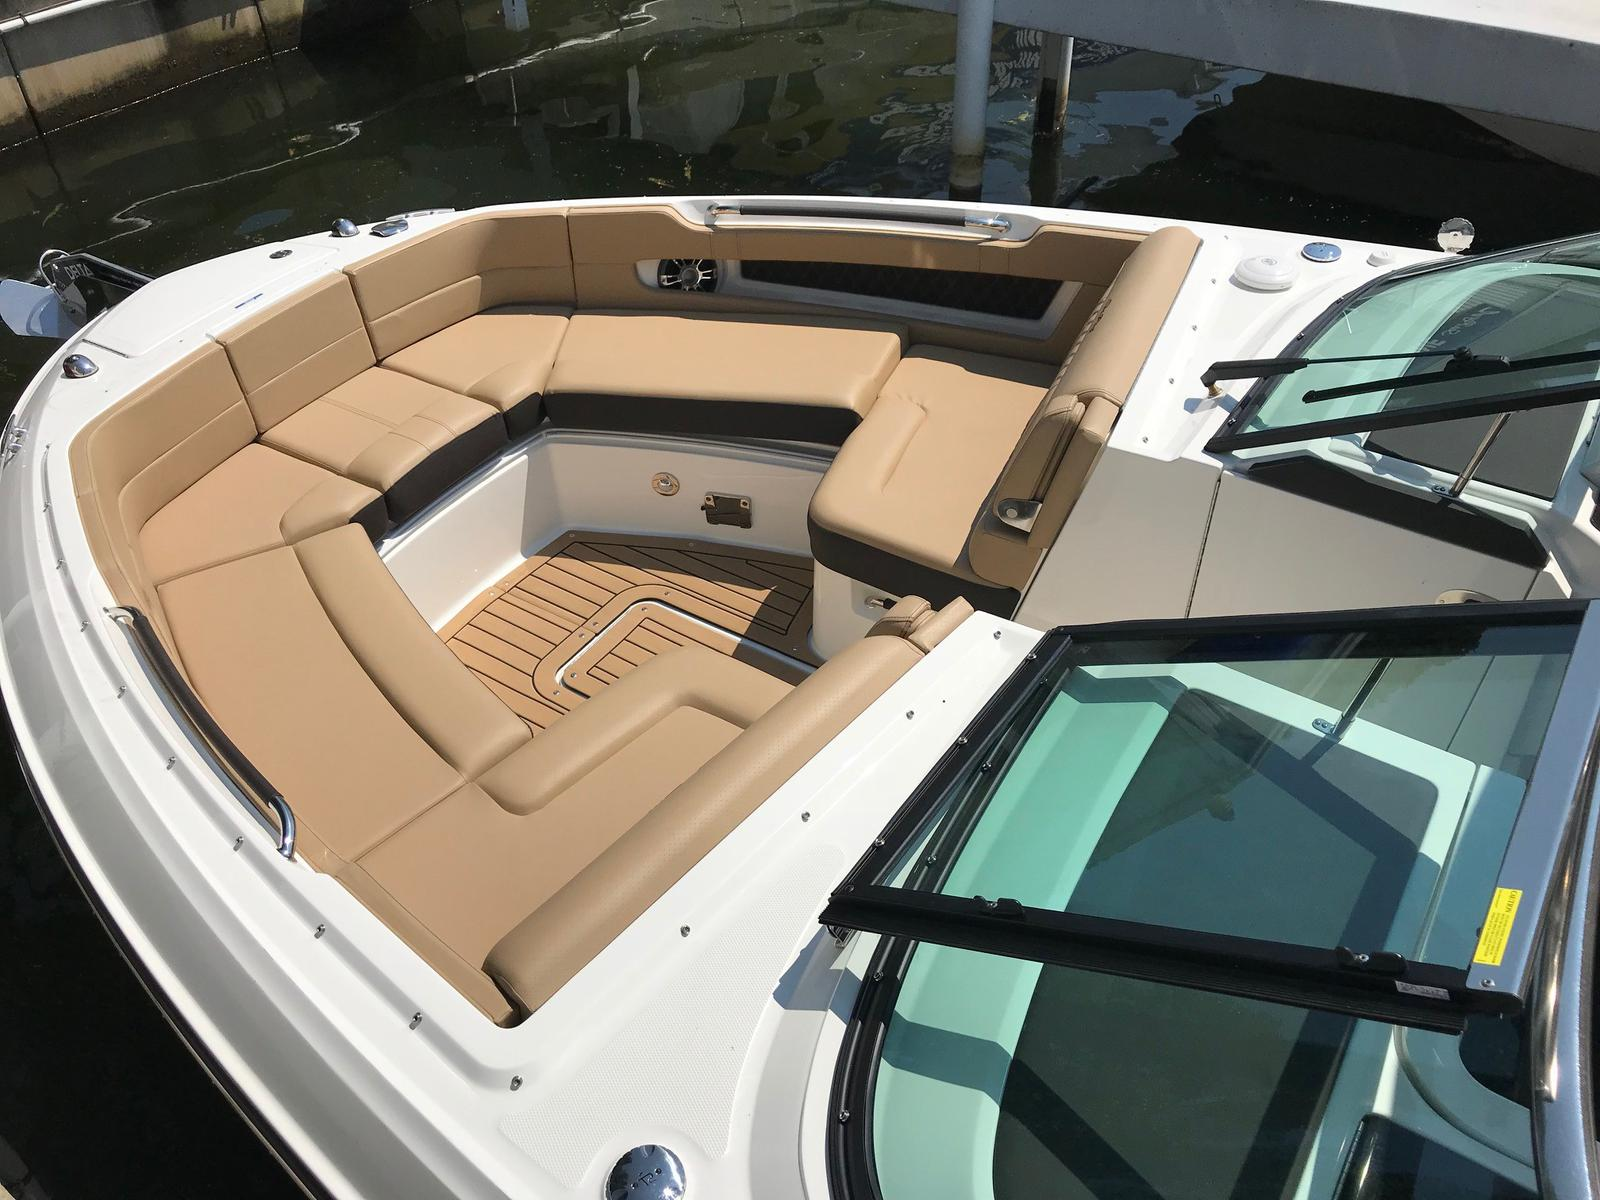 2019 Sea Ray boat for sale, model of the boat is SLX 310 & Image # 3 of 5